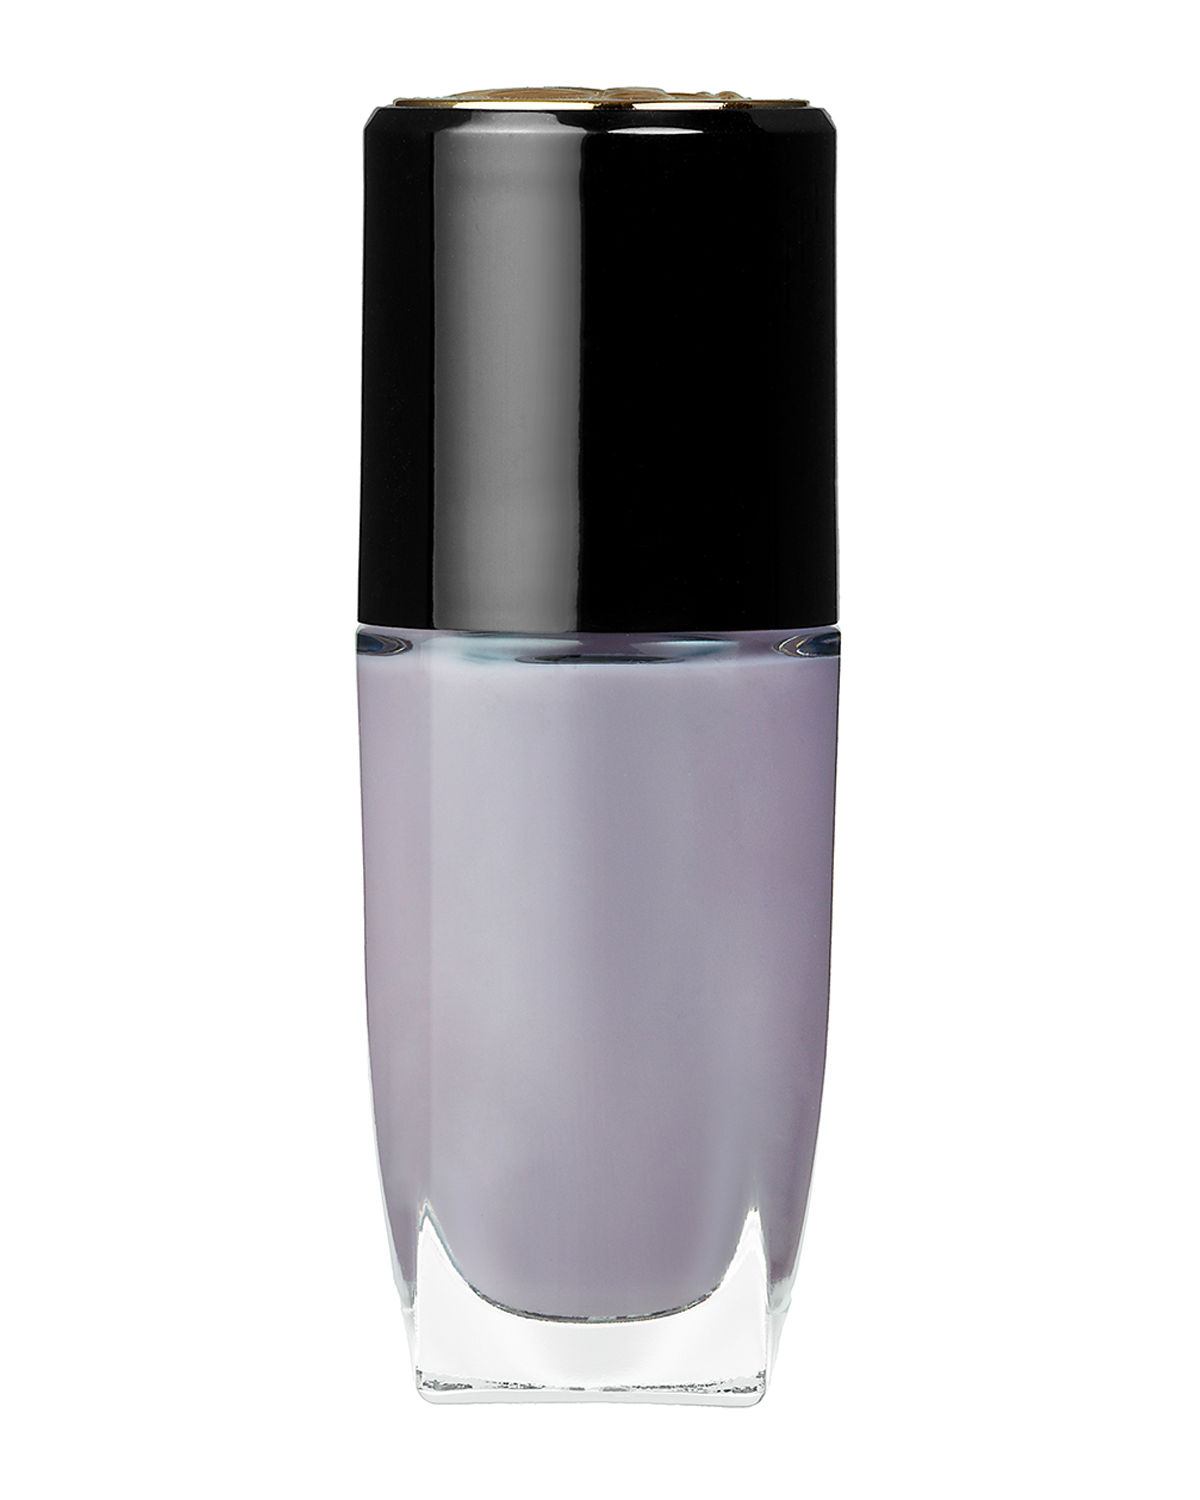 Proenza Schouler for Lanc & #244me Le Vernis Nail Lacquer - CHROMA COLLECTION